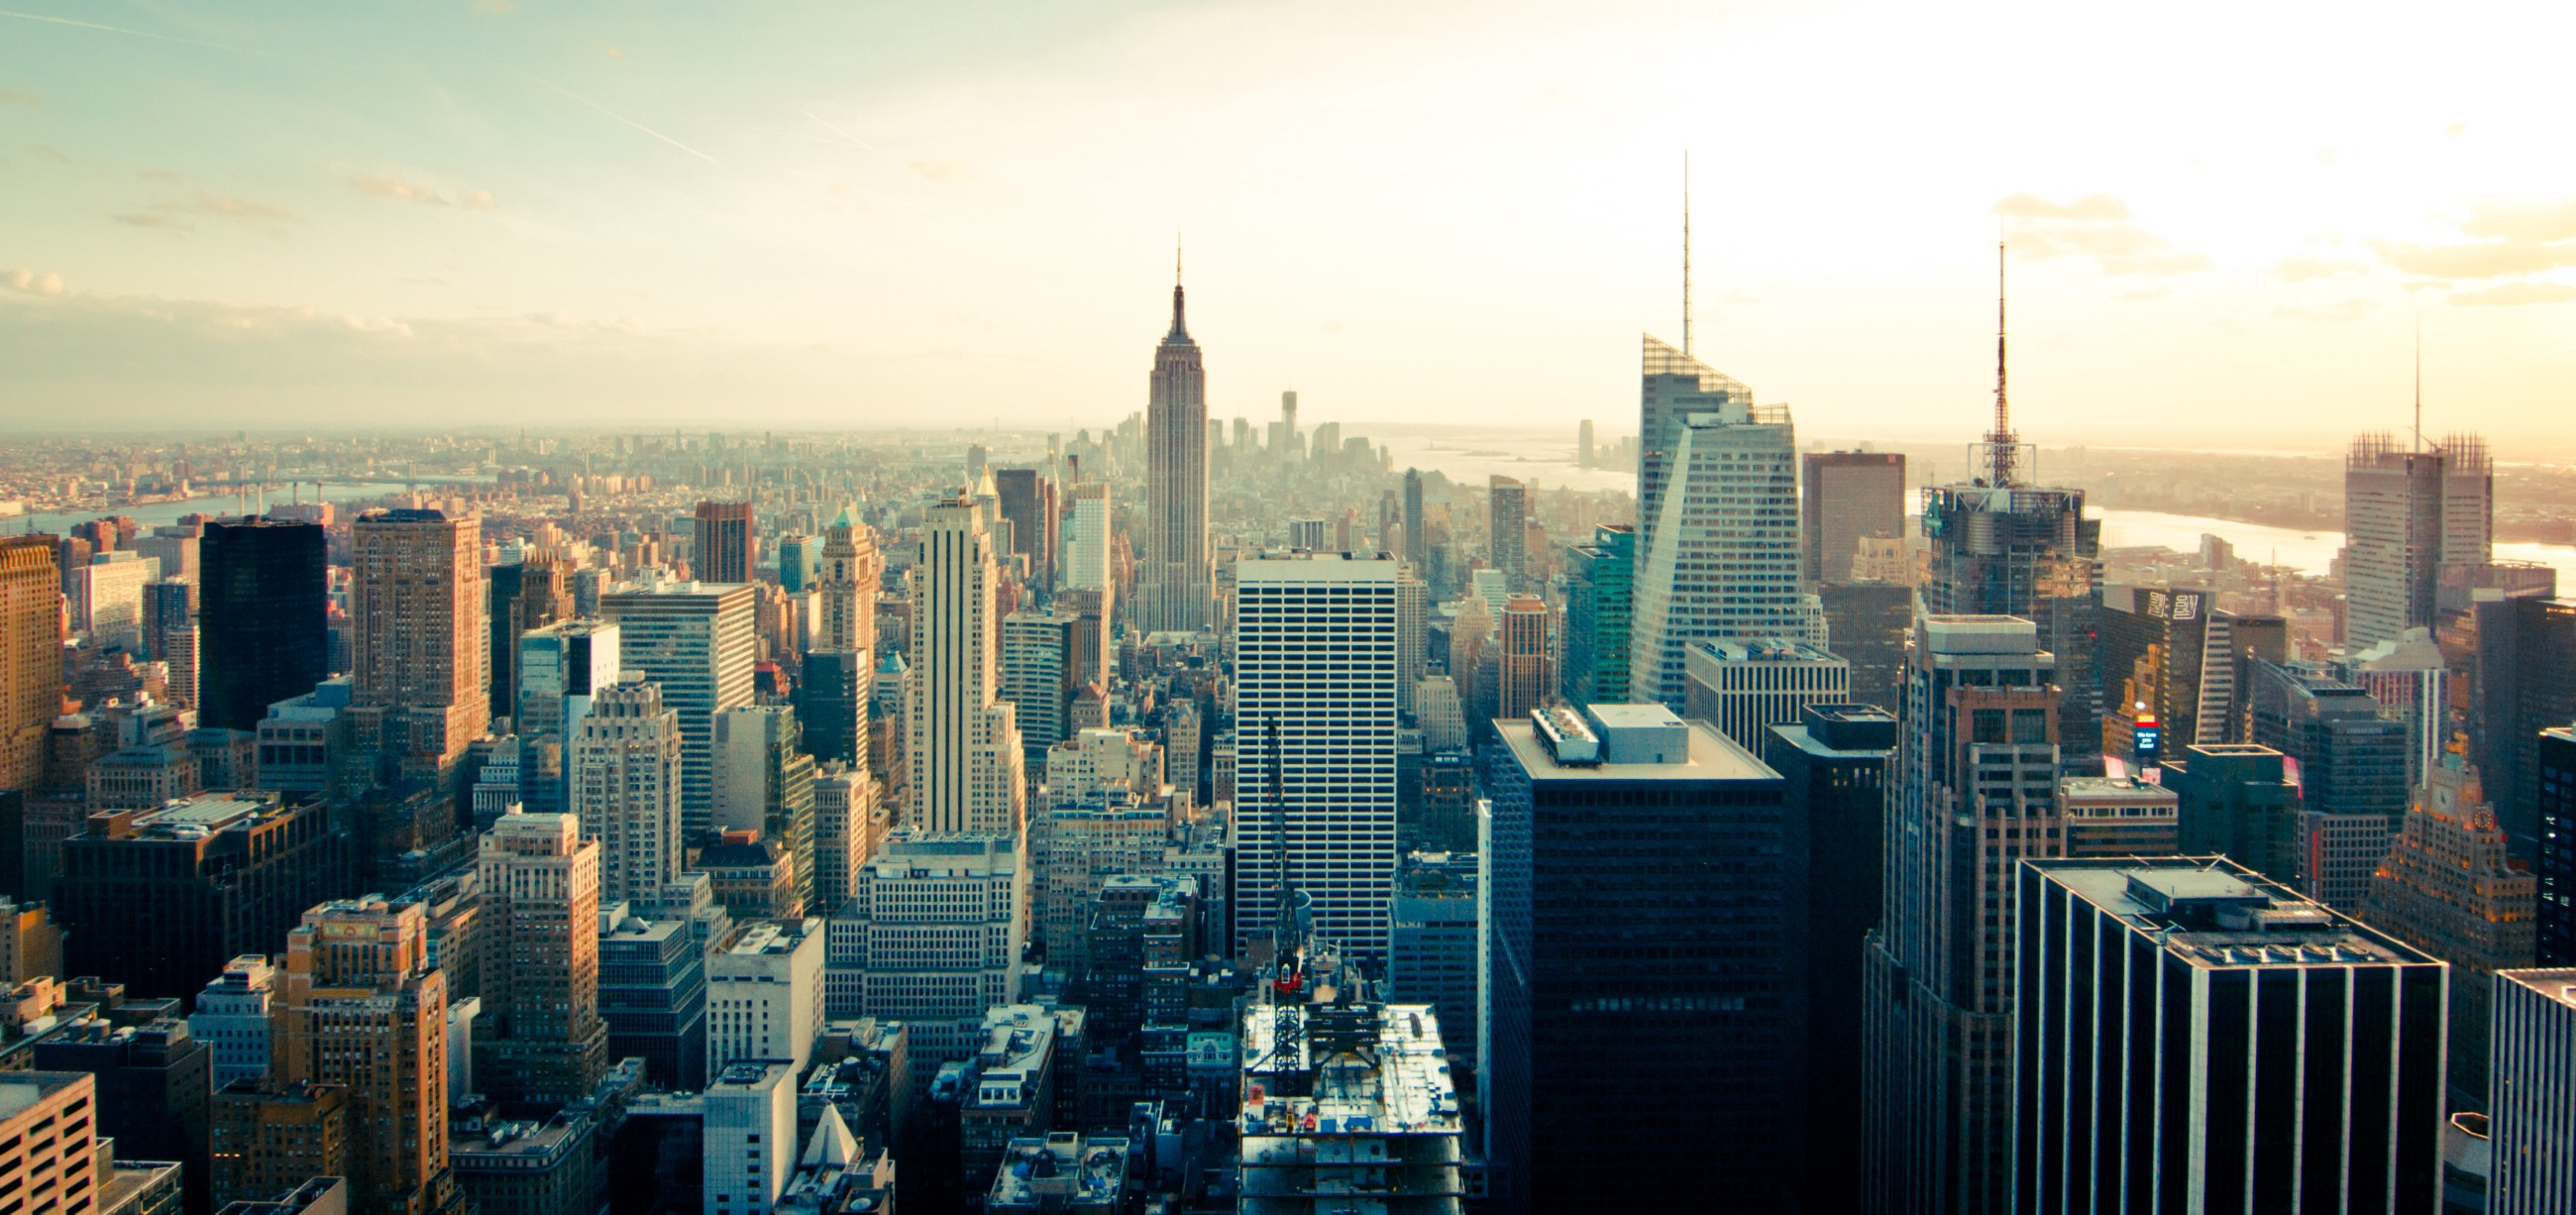 the new york city skyline with the empire state building at sunset by philipp henzler on unsplash